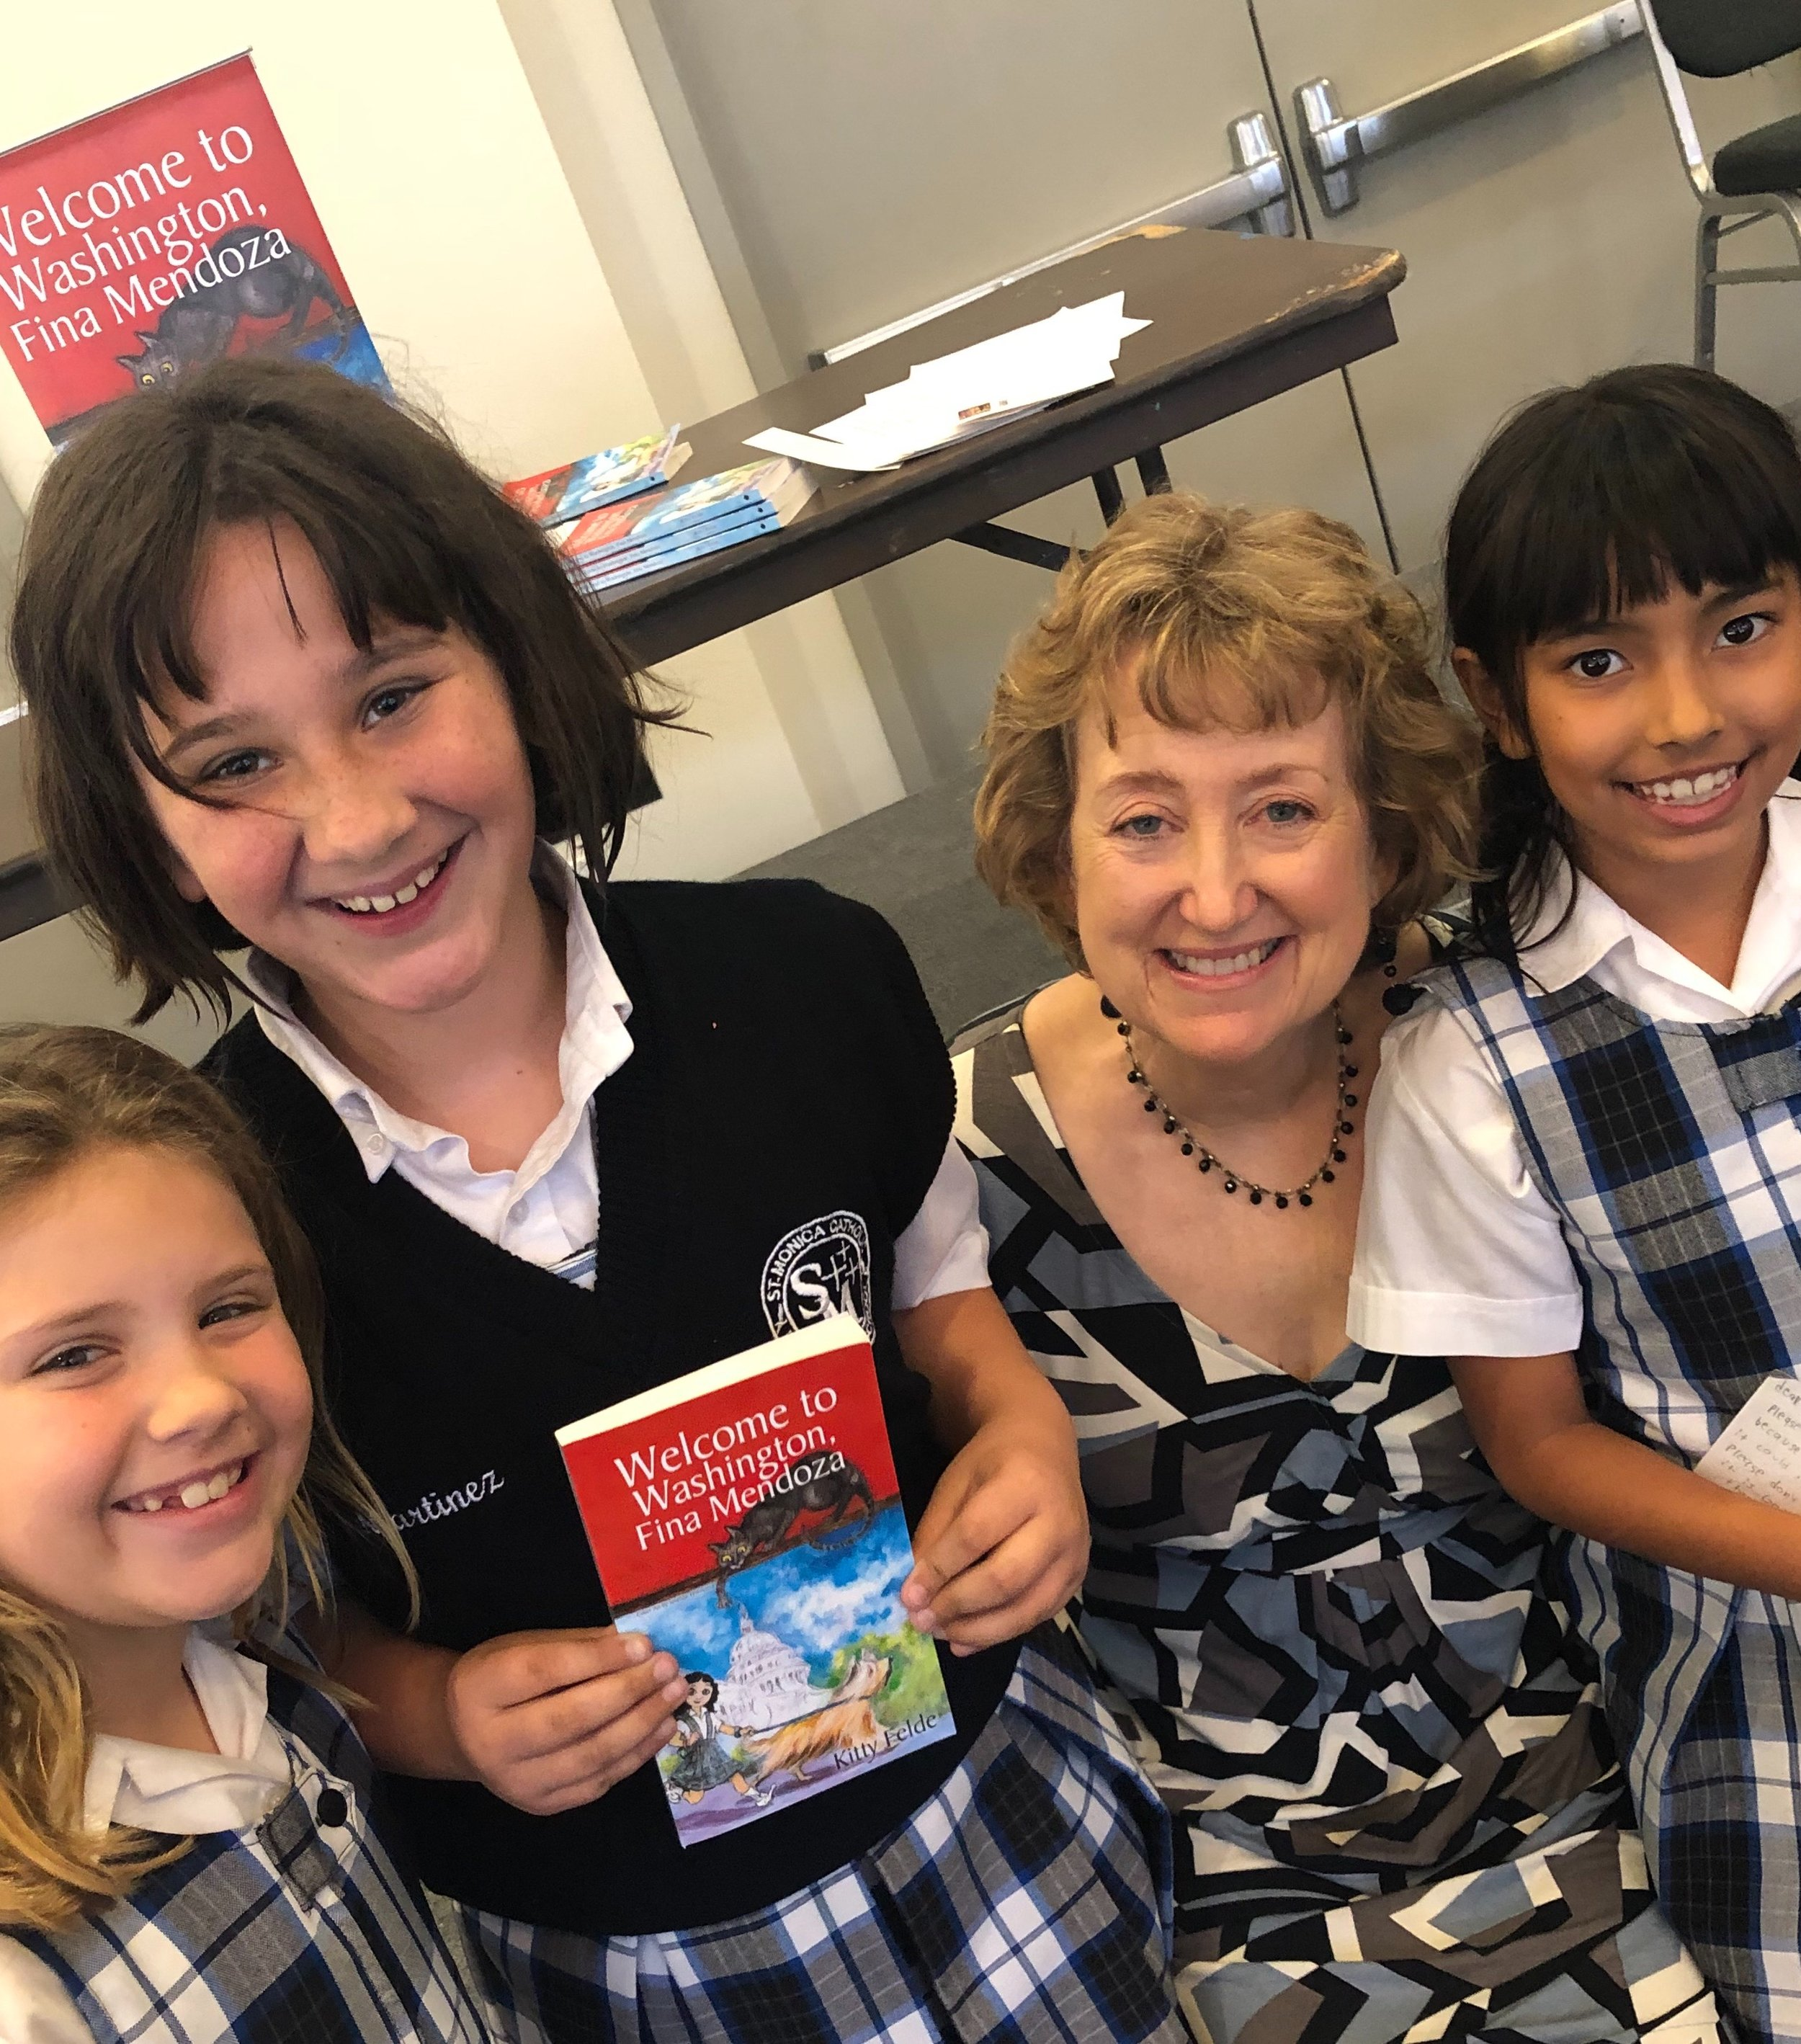 Kitty talks about writing, Congress, and the legend of the Demon Cat with students at St. Monica Elementary School in California.